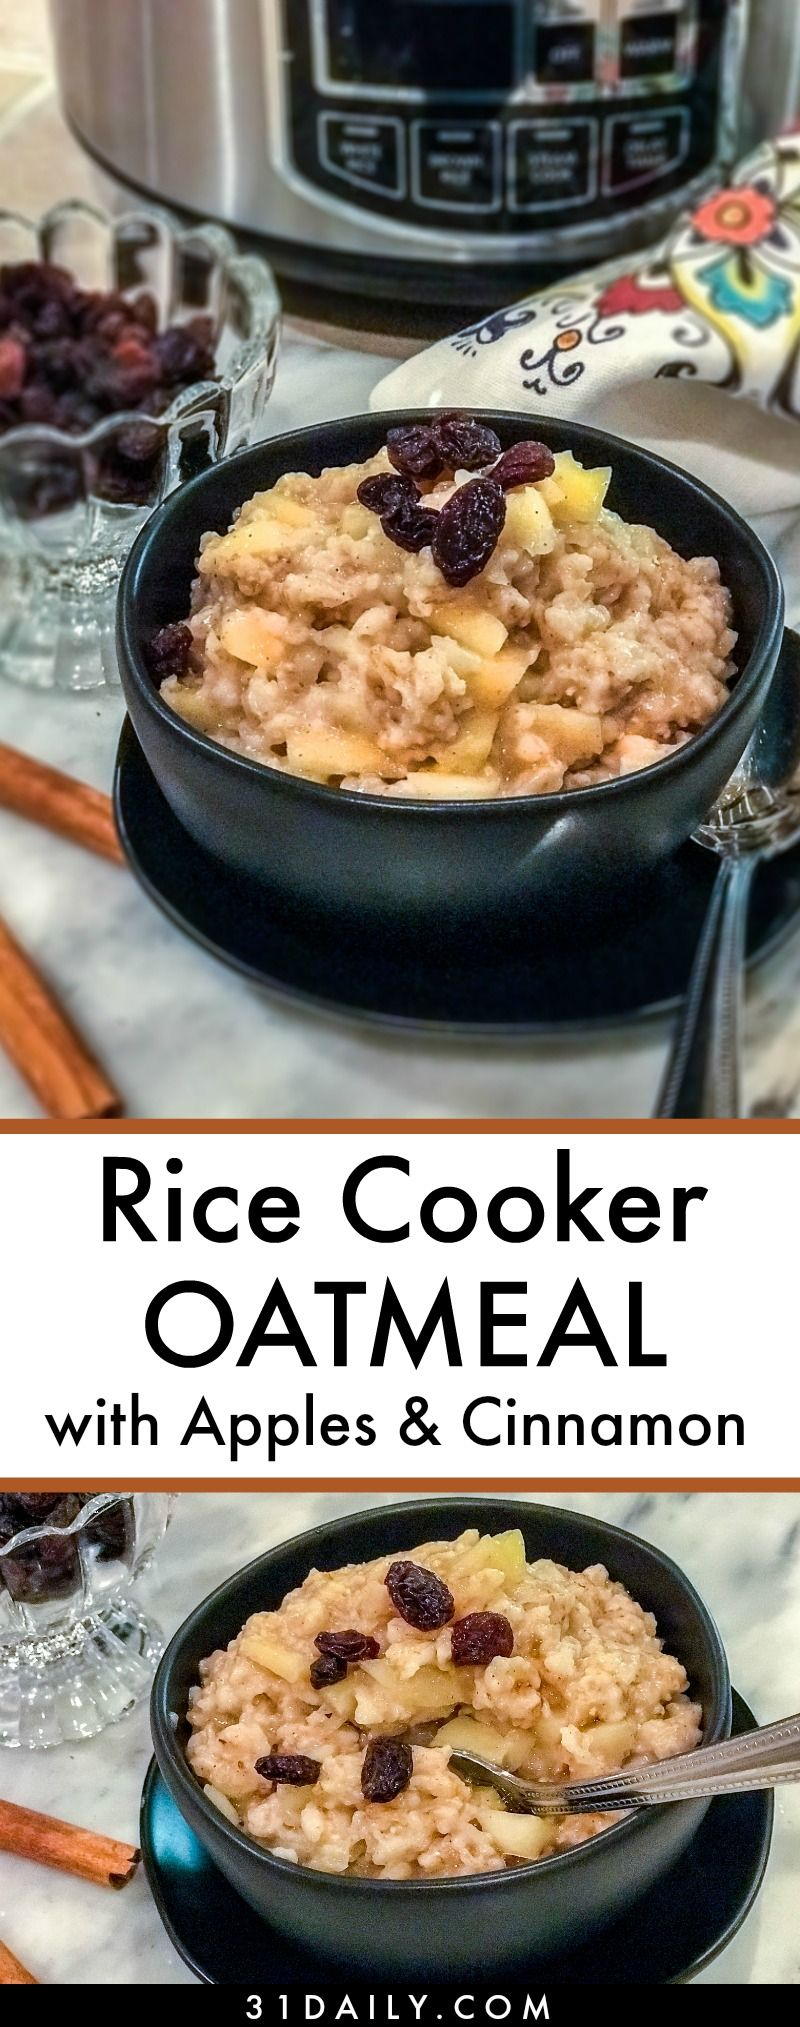 Easy Rice Cooker Oatmeal with Apples and Cinnamon - 31 Daily